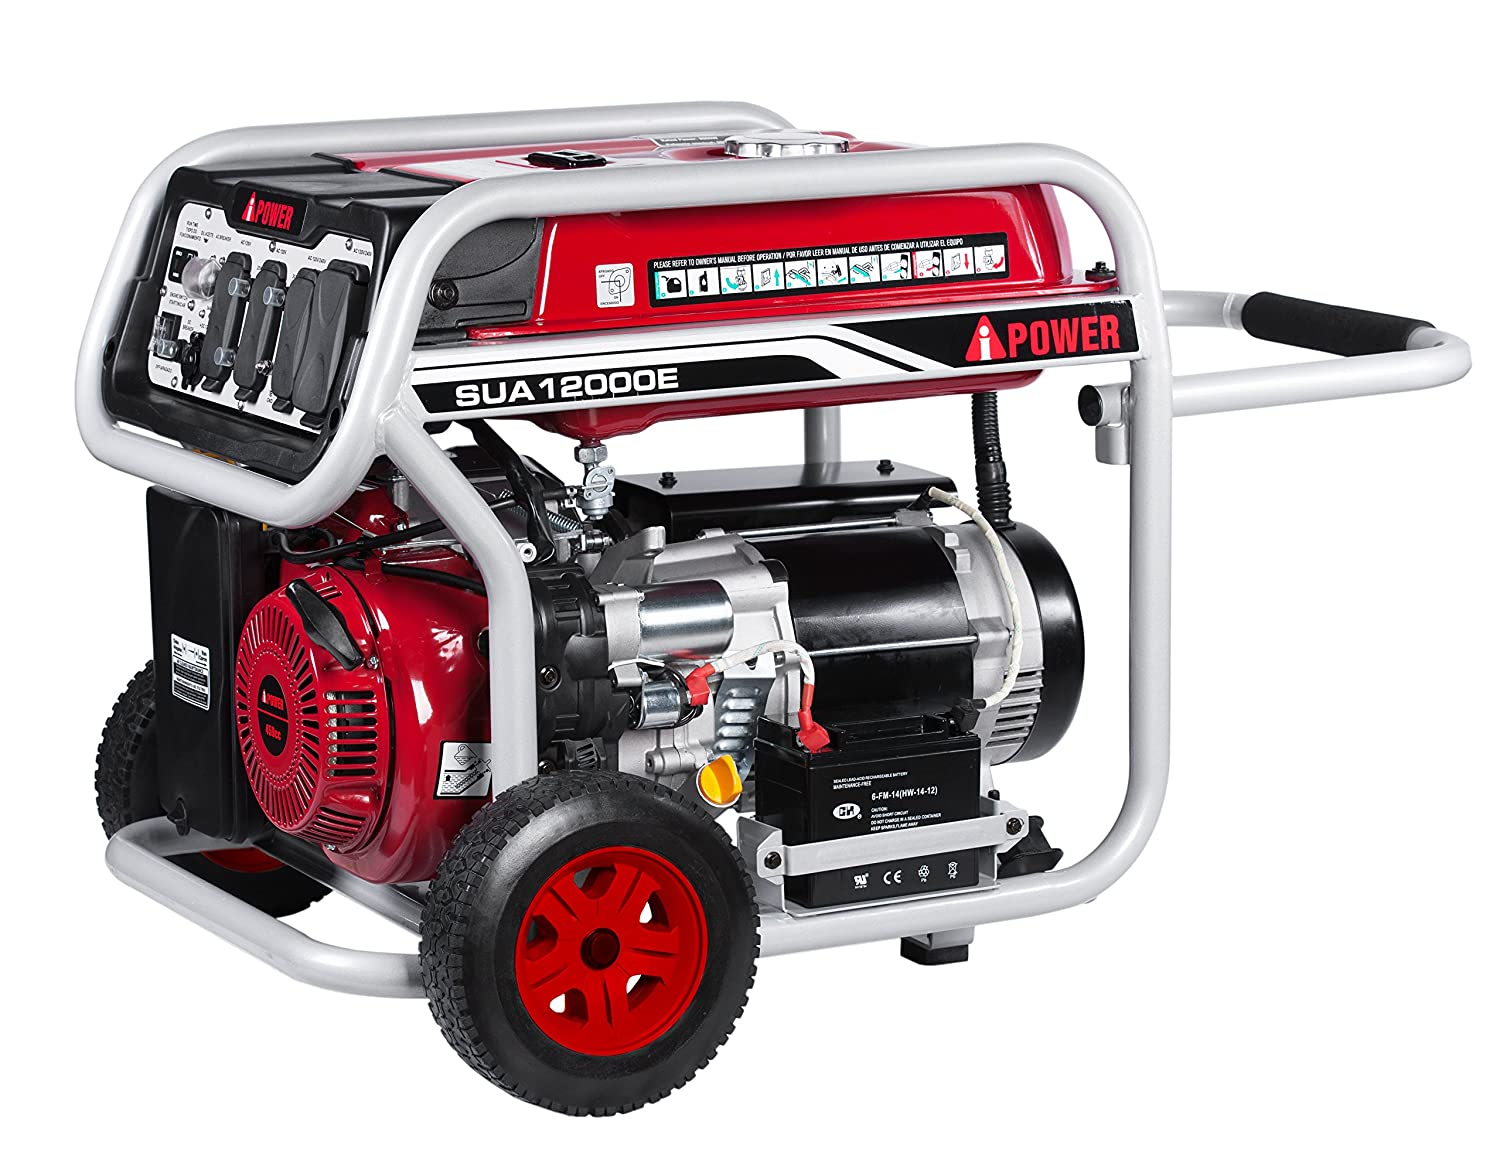 A Ipower Sua12000e 12 000 Watt Portable Generator Gas 7500 Wiring Diagram And Parts List Powered Electric Start Red Garden Outdoor